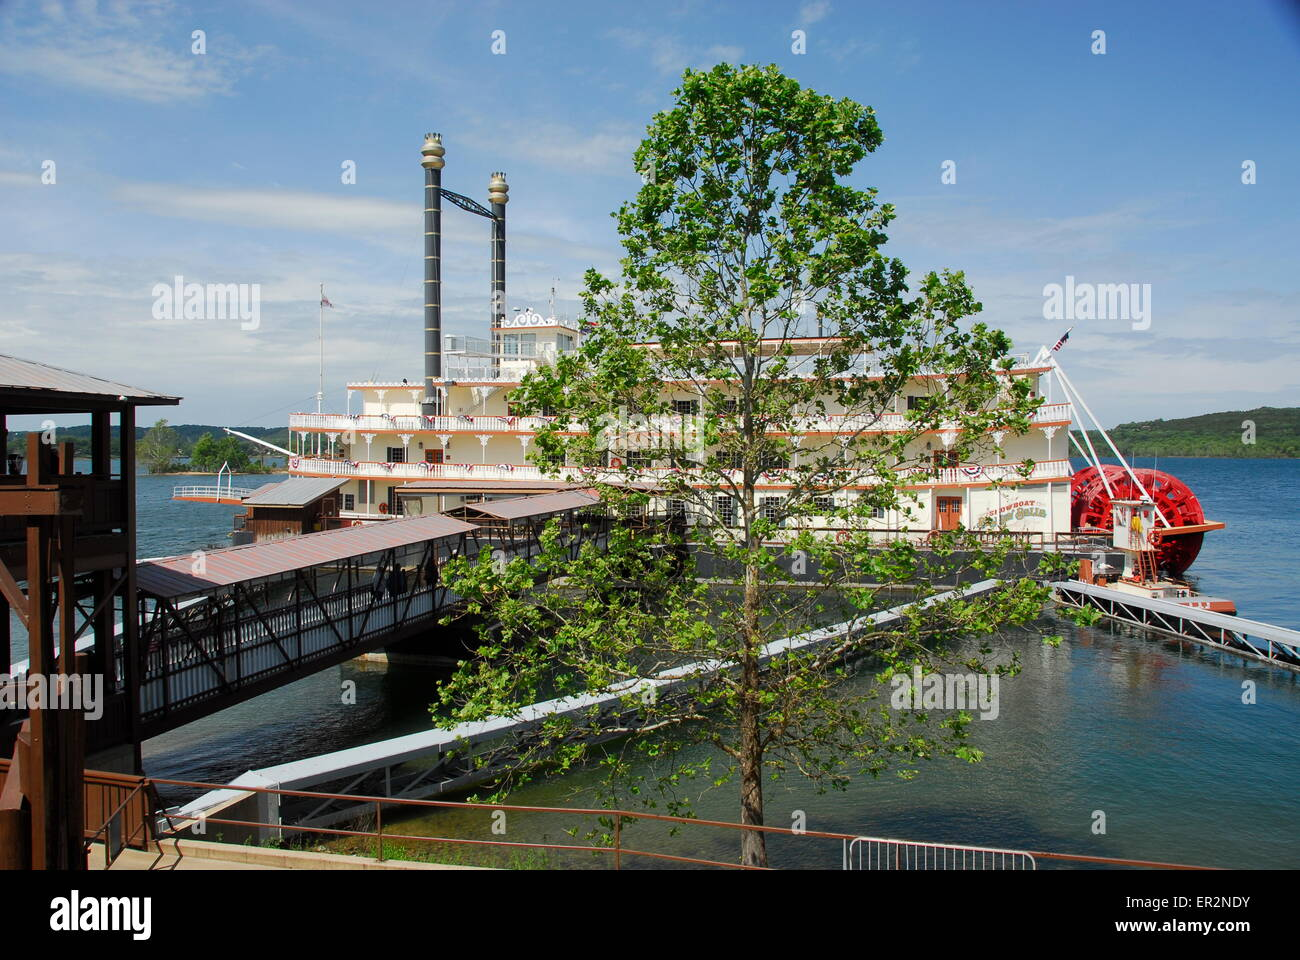 branson belle showboat on table rock lake in branson, missouri stock